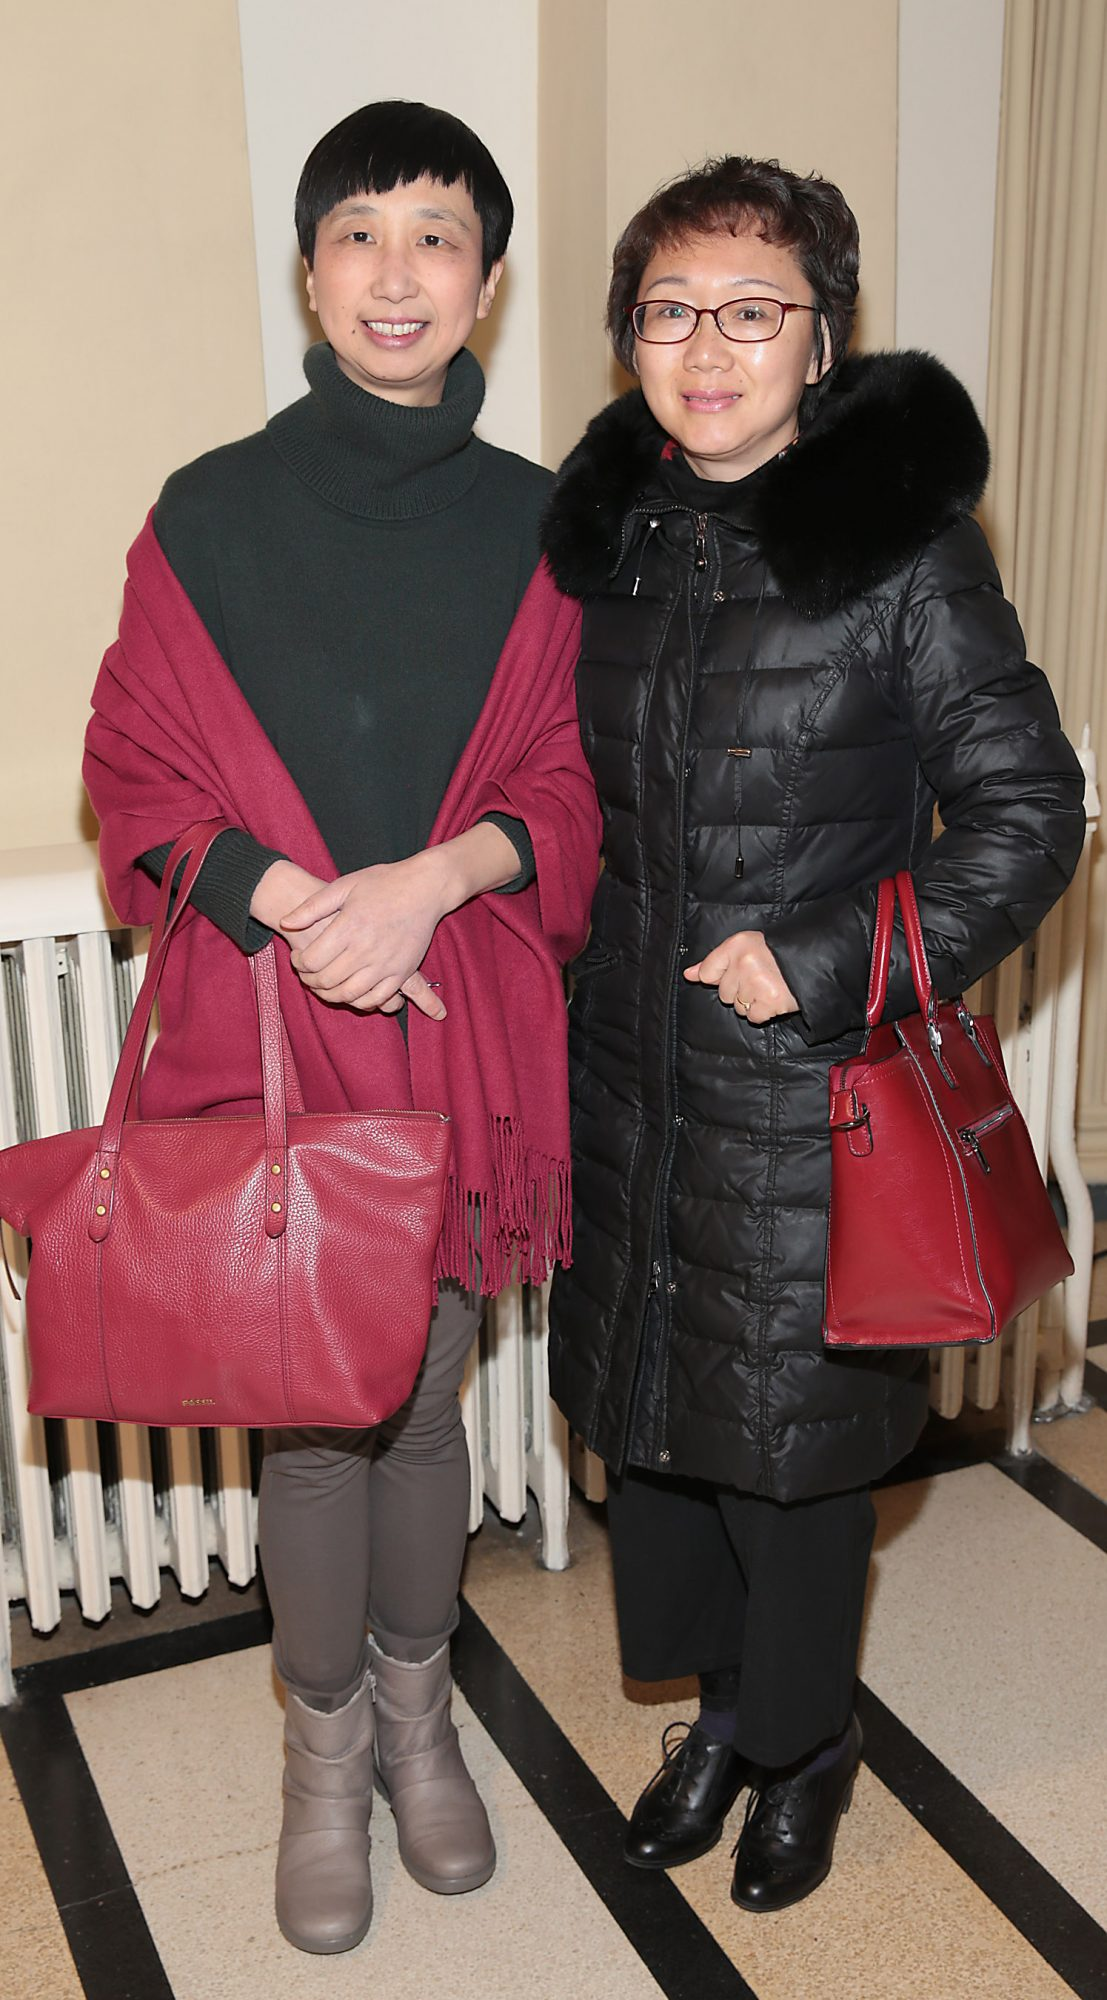 Jane Zuo and Zhang Xuan pictured at the official opening event of Dublin Chinese New Year Festival 2019 at The Hugh Lane Gallery sponsored by Kildare Village. Dublin Chinese New Year Festival runs until 17th February for more see www.dublinchinesenewyear.com   Pic Brian McEvoy